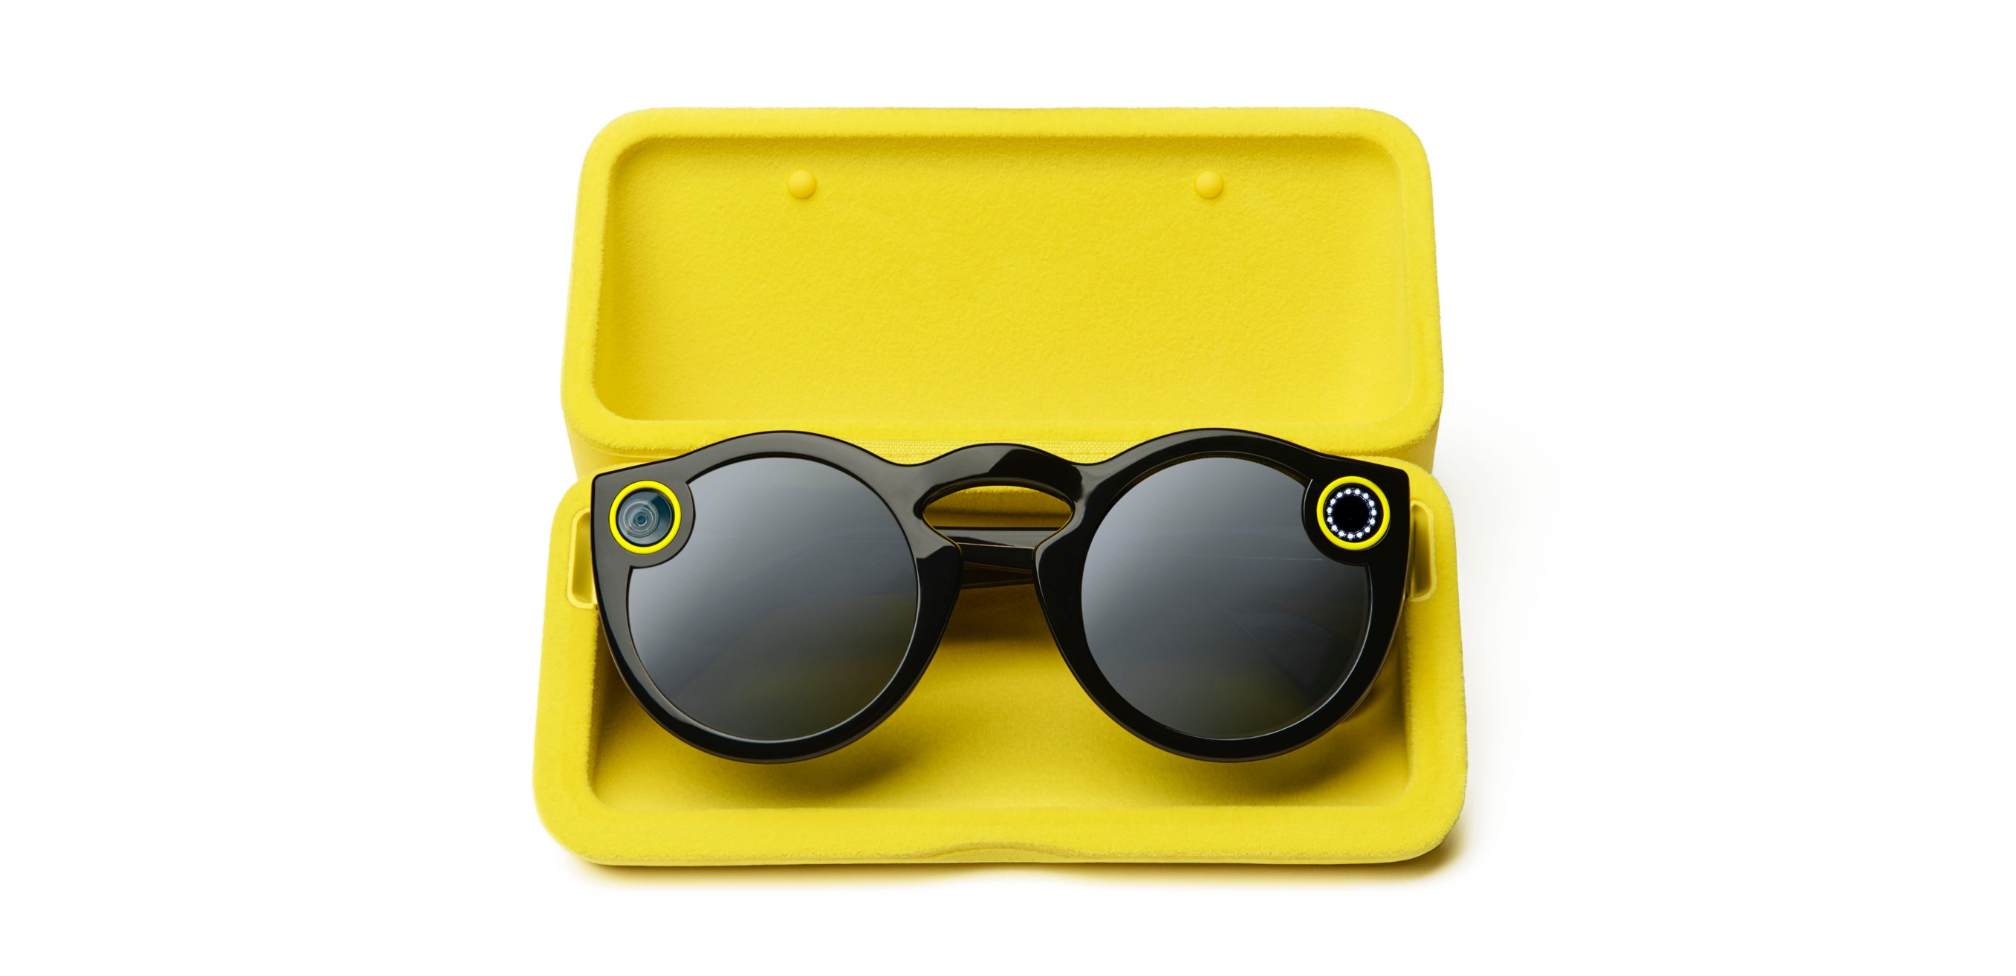 Snapchat Spectacles - Photo Credit: The Verge